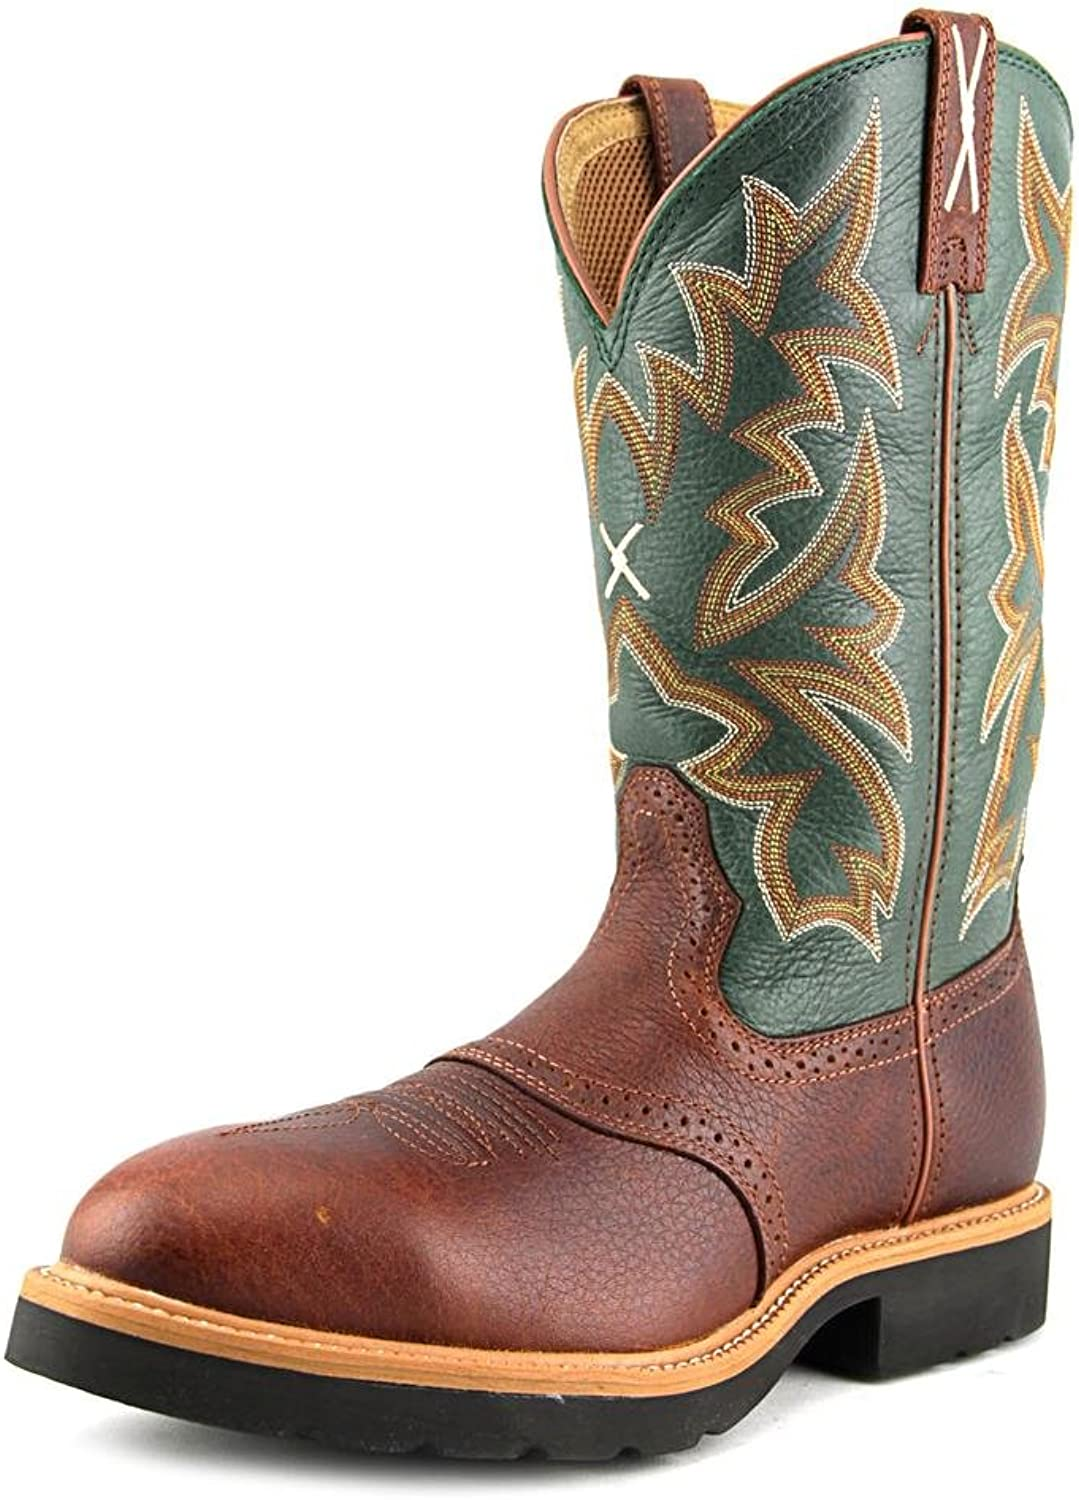 Twisted X Men's Saddle Vamp Pull-On Work Boot Steel Toe